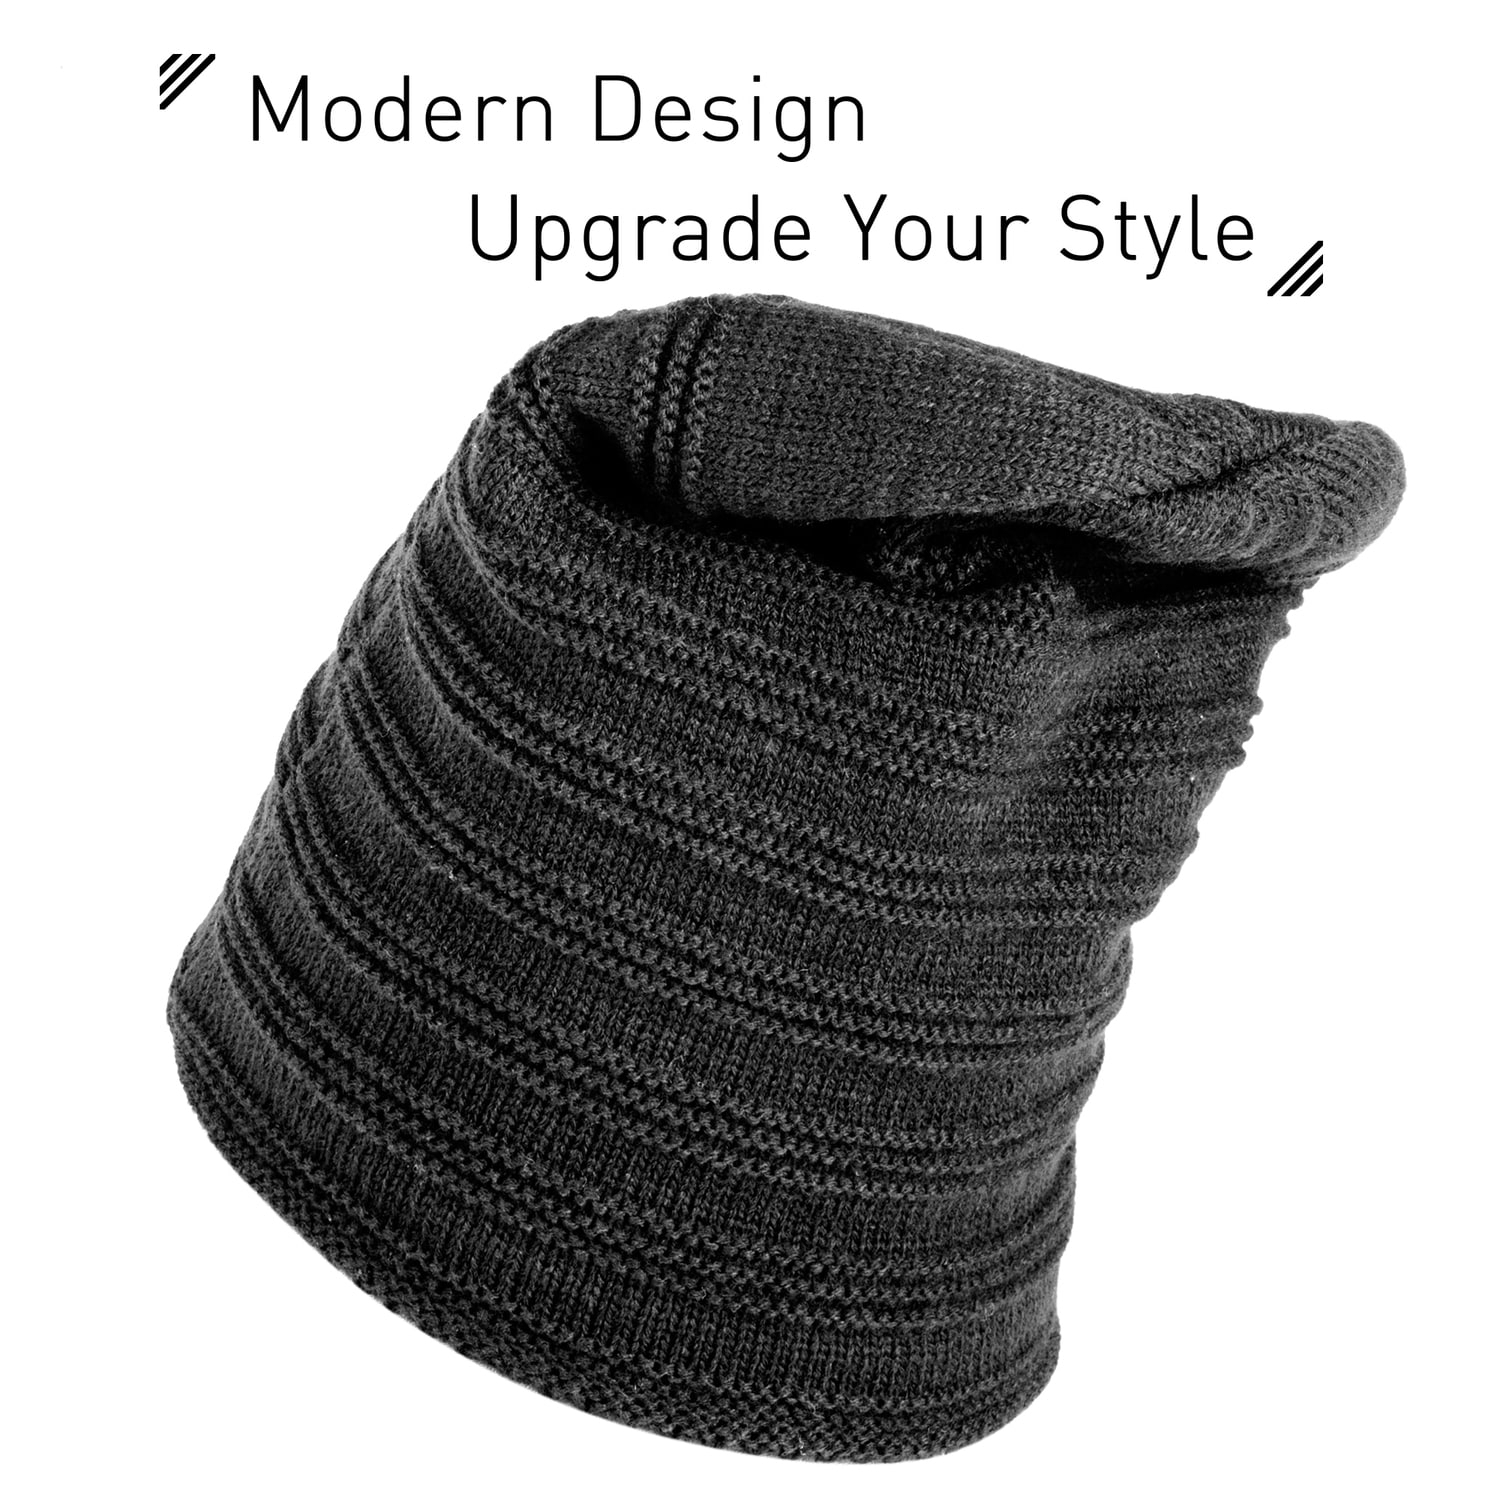 1589bc183 Zodaca Unisex Winter Insulated Warm Thick Cable Knit Baggy Beanie Knit Hat  Skull Cap with Plush-Filled Inside for Men and Women